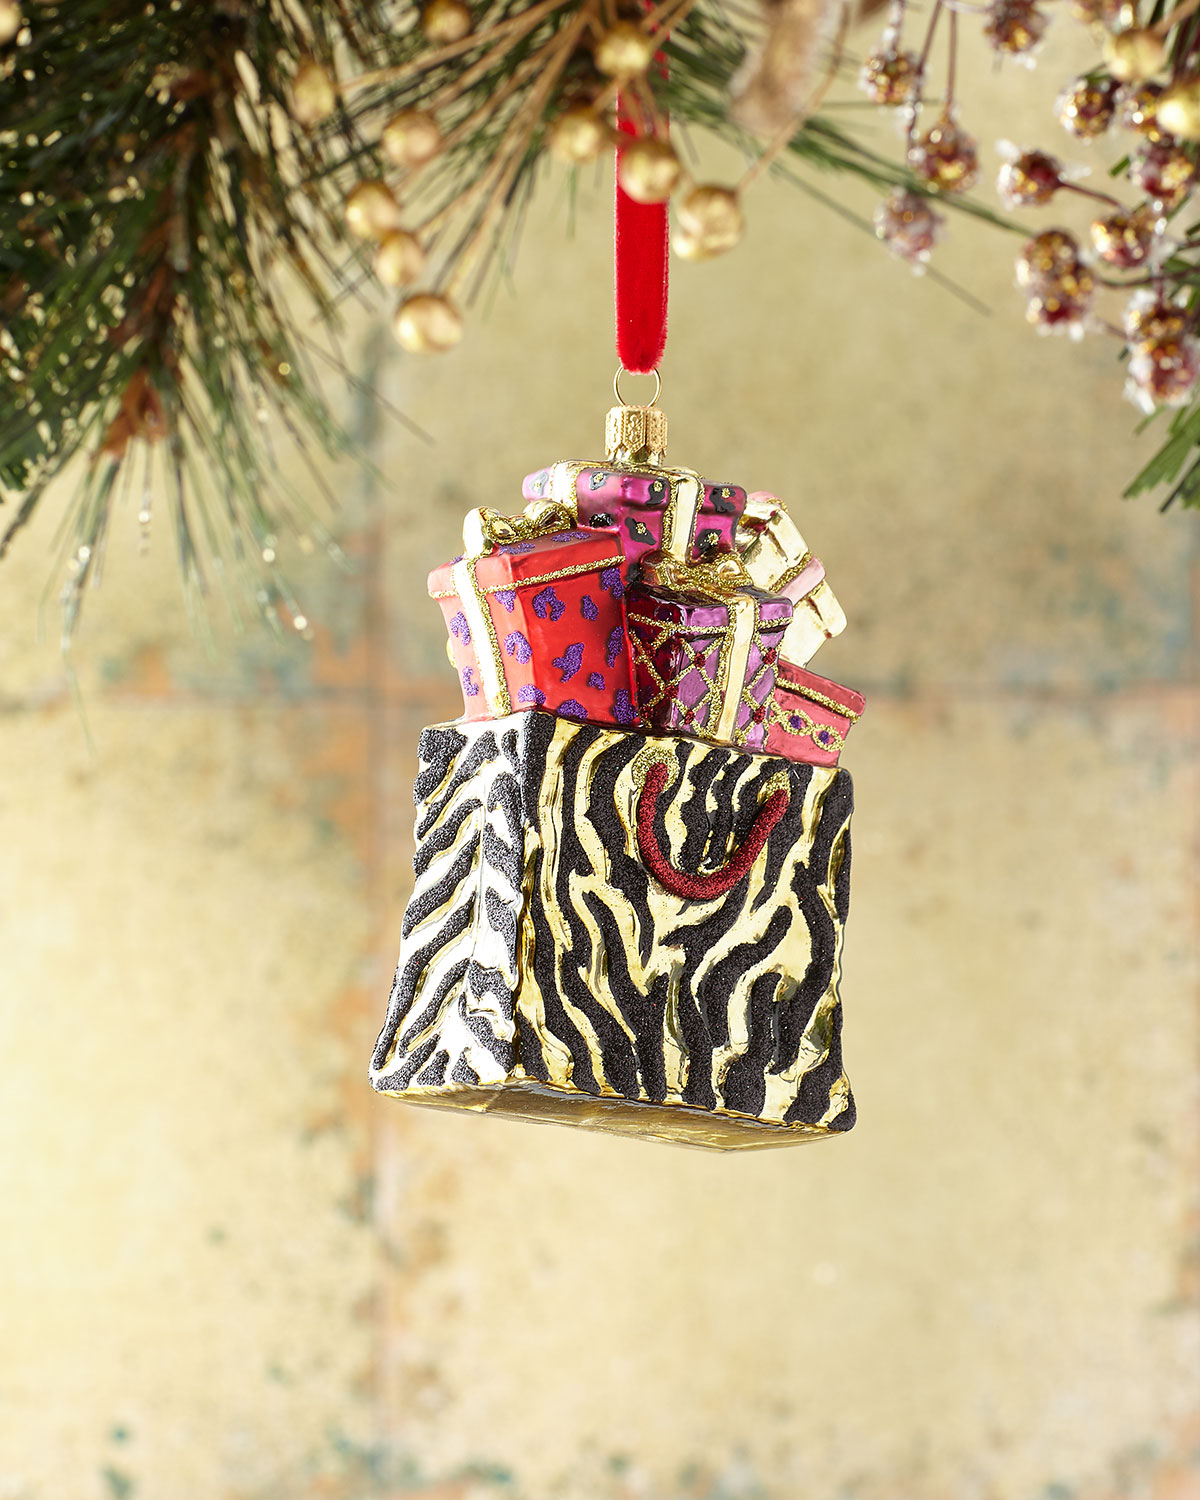 Exclusive Animal-Print Shopping Bag Christmas Ornament